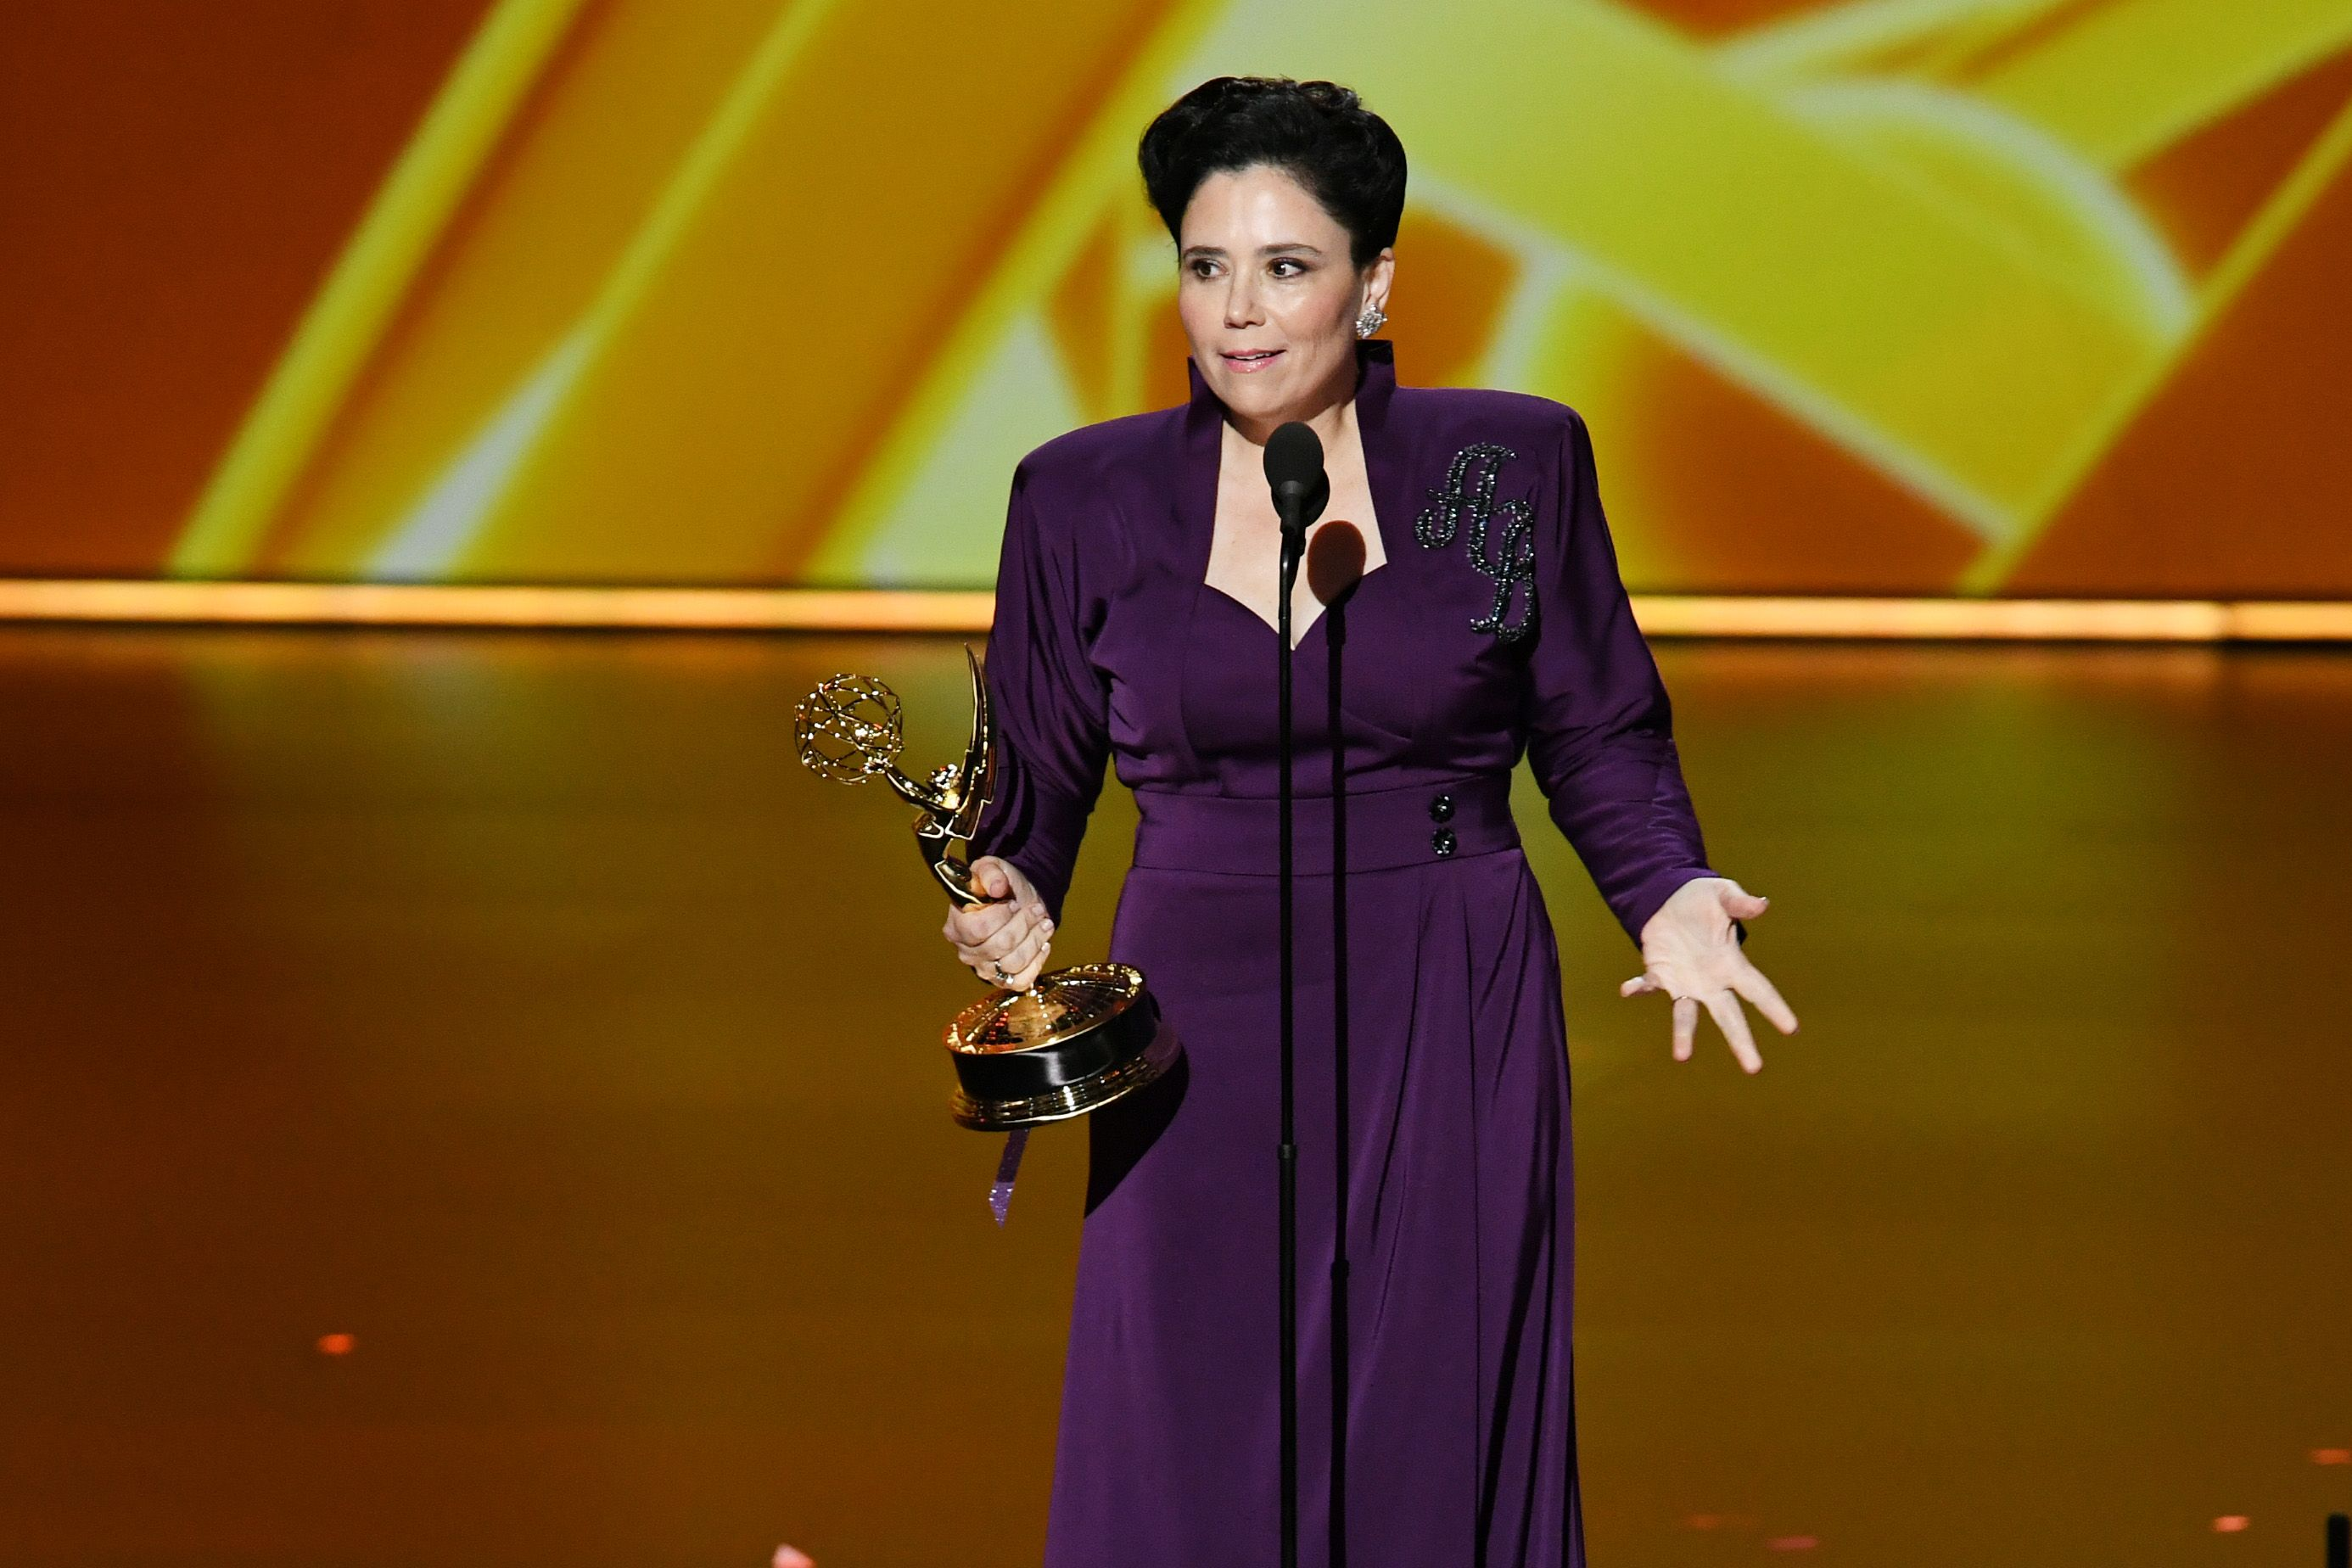 Alex Borstein Set the Emmys Bar High With Her 'Step Out of Line' Speech